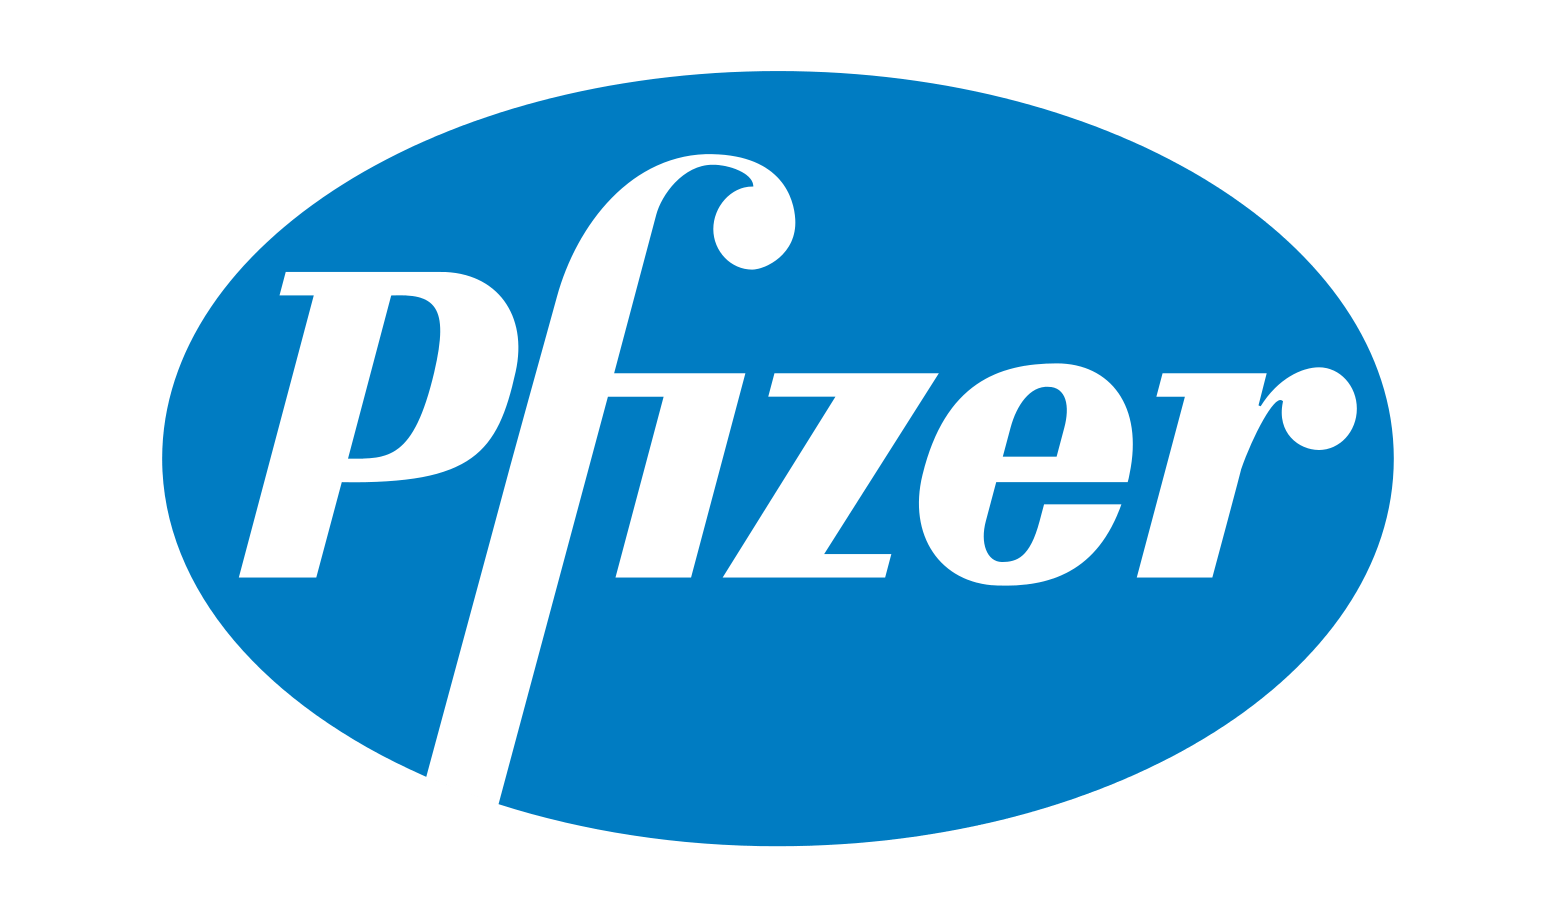 Pfizer - Assisting with Consolidation